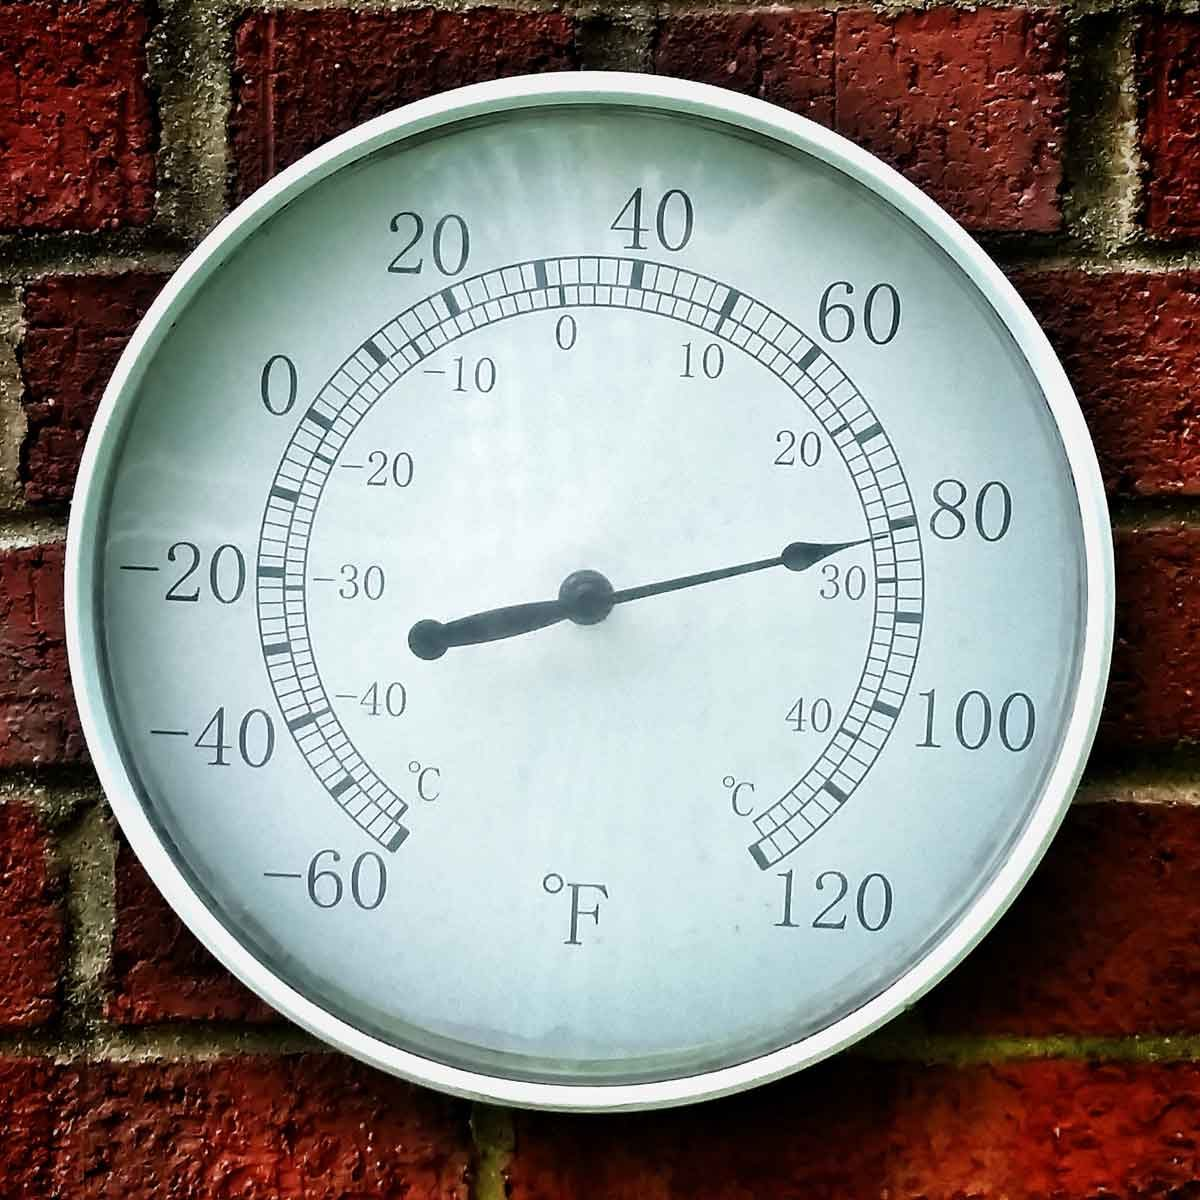 Thermometer showing 80 degrees